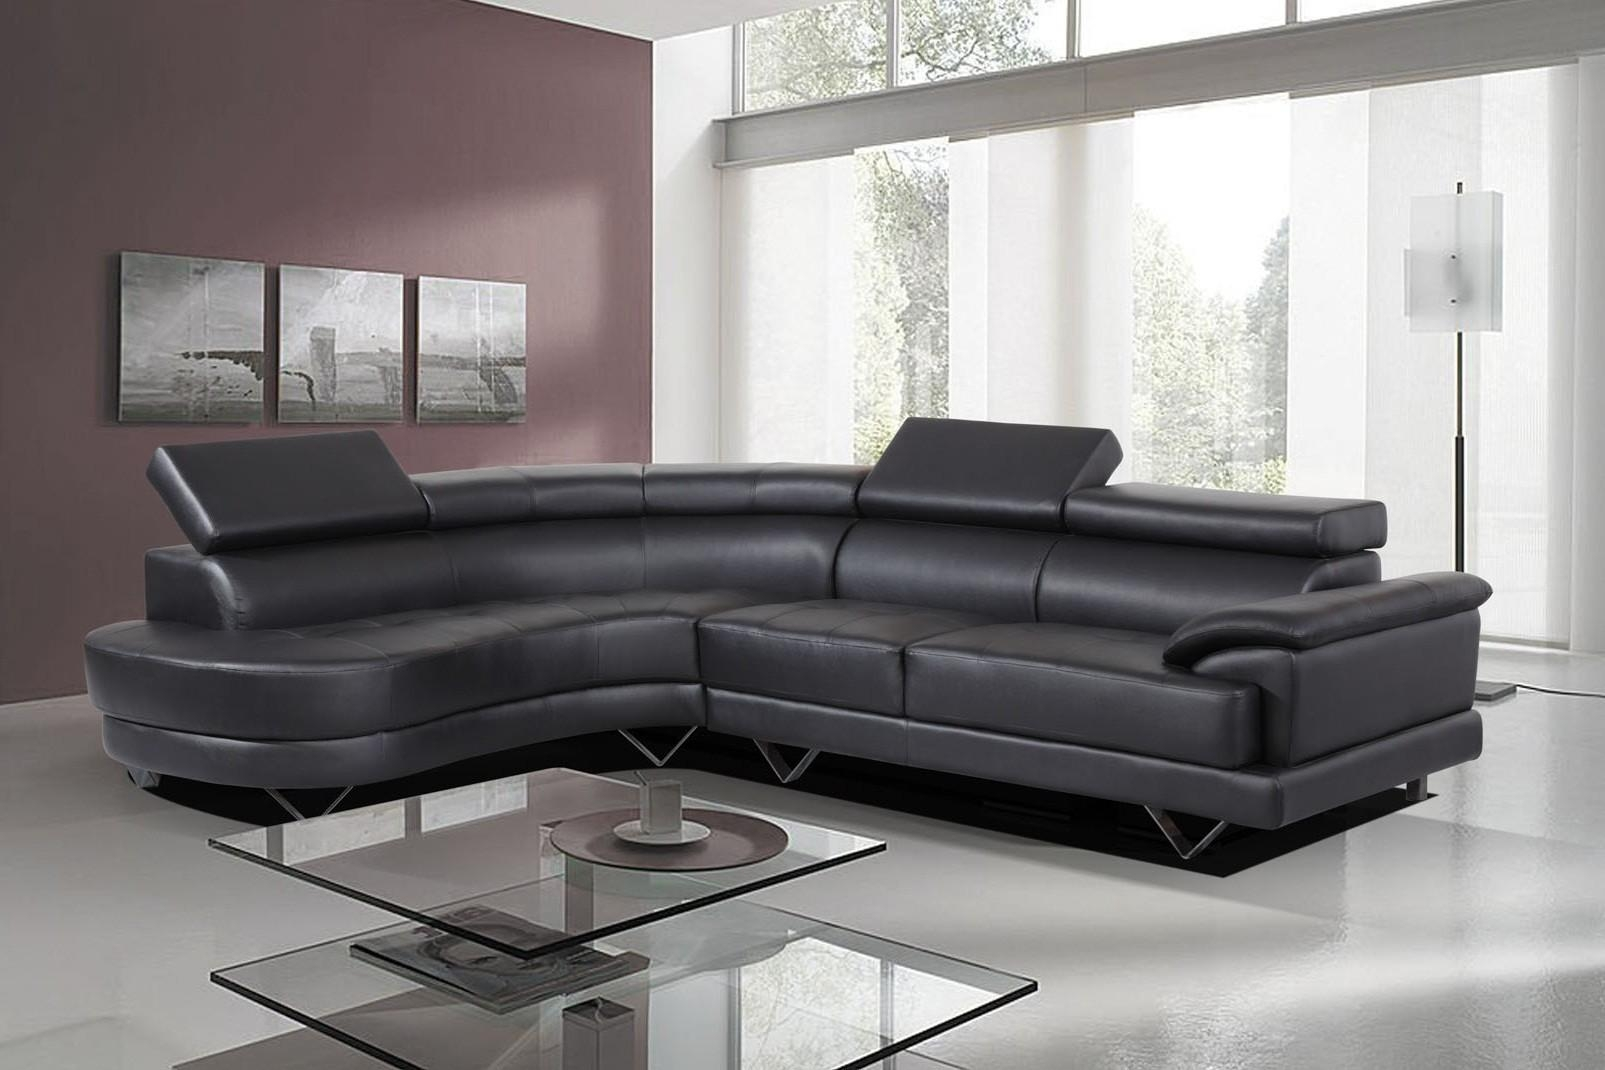 Black Bonded Leather Sofa | Sofa Gallery | Kengire Throughout Bonded Leather Sofas (View 12 of 20)